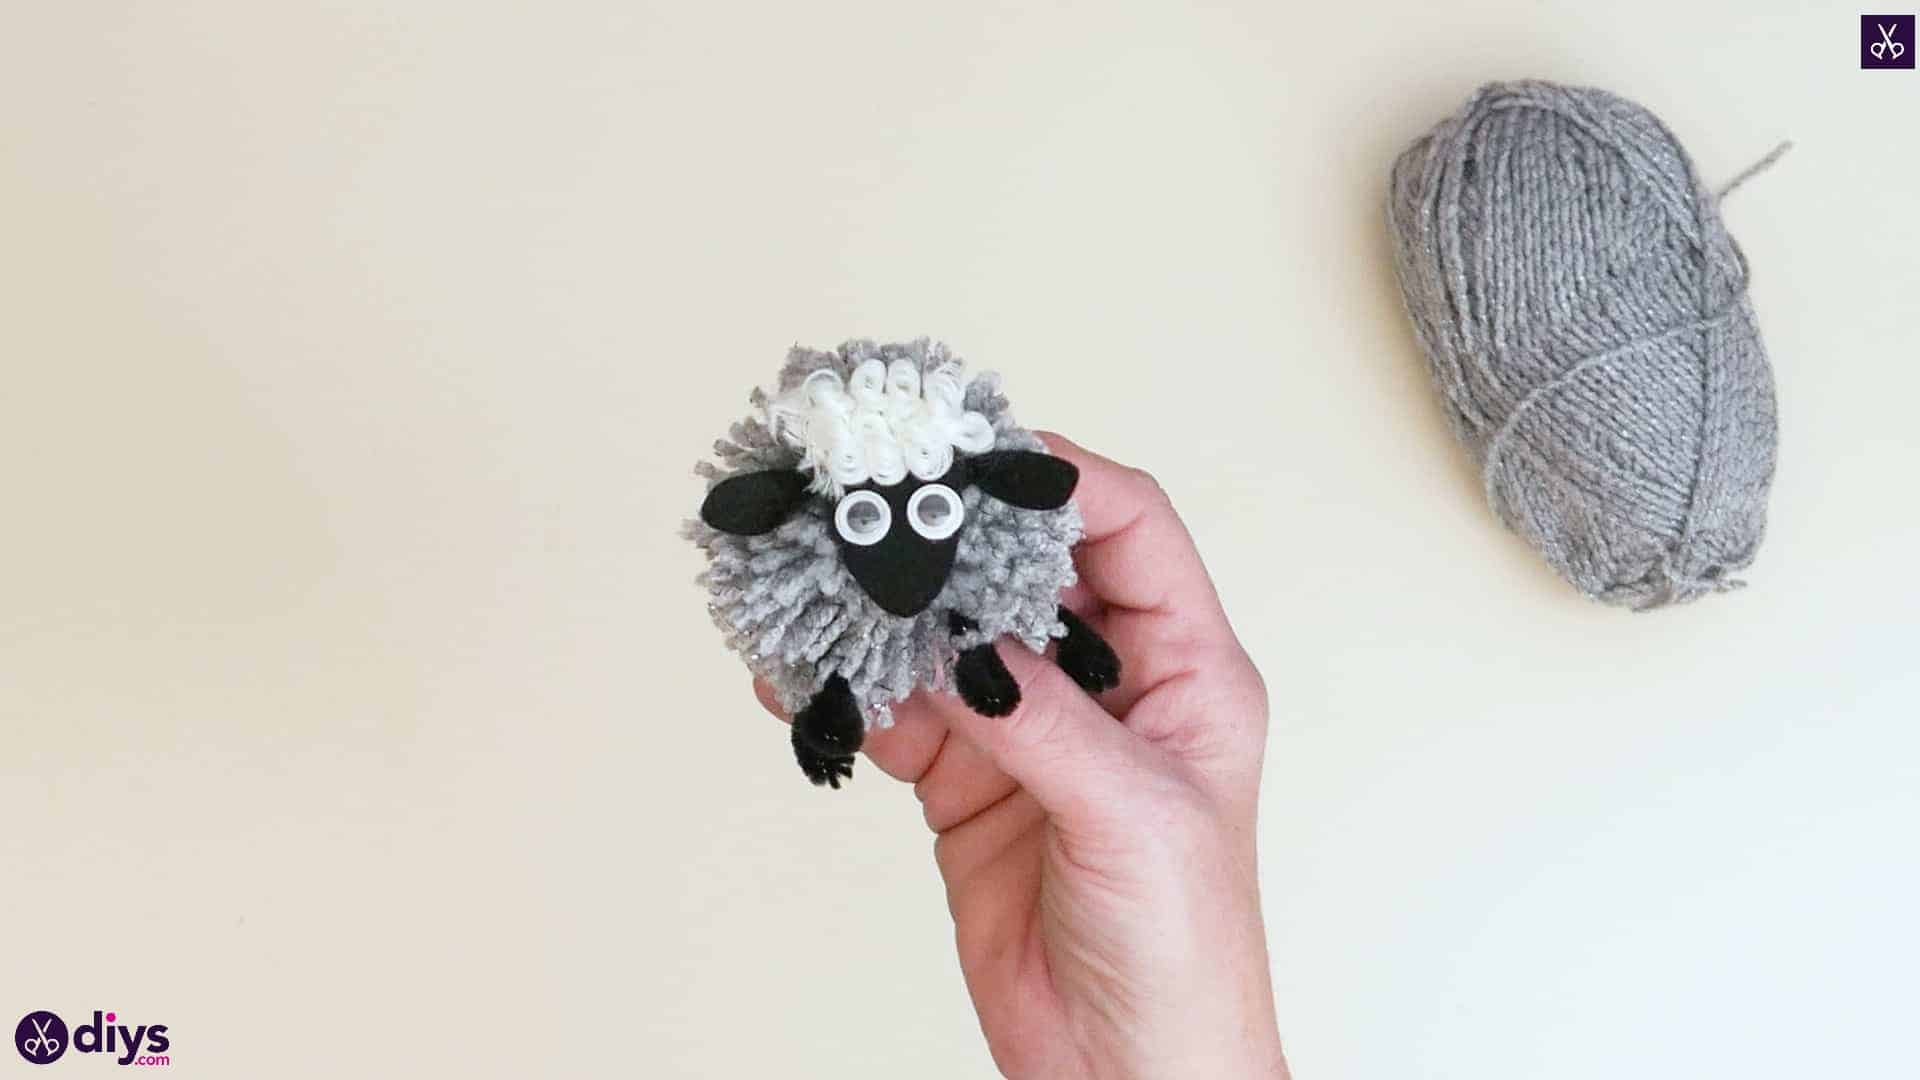 Diy funny pom pom sheep for kids step 6 colorful